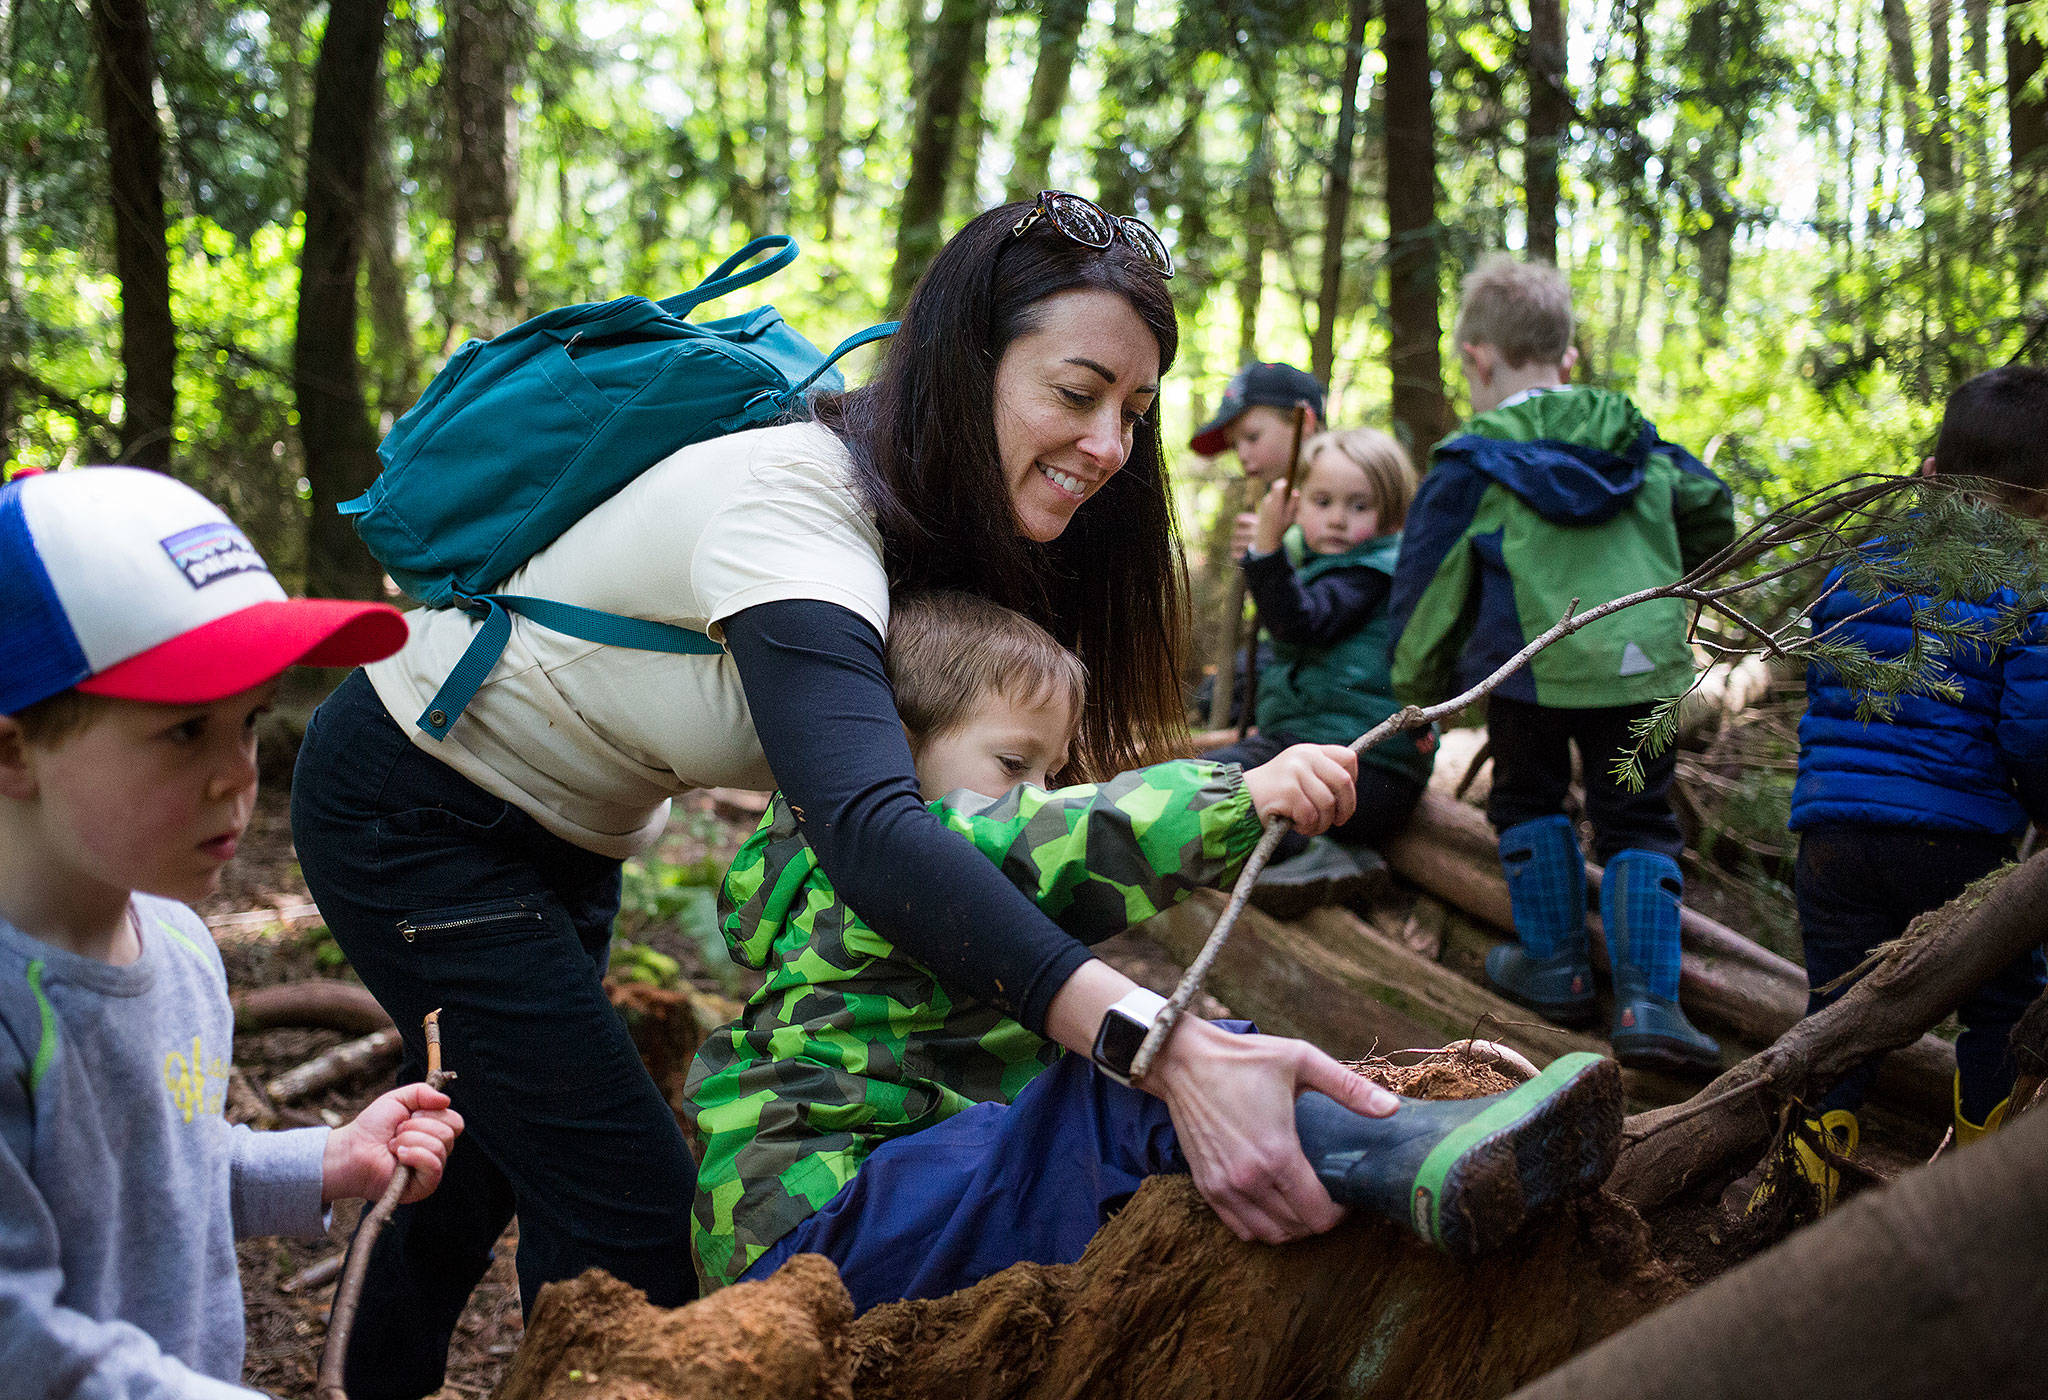 """Kristin Hammer, owner of Nature Together, helps a stuck Lincoln Mays, 3, climb out of a tree stump in an area called the kids call the """"pirate ship"""" in Japanese Gulch Park on May 1 in Mukilteo. The preschool specializes in day classes with an environment theme. (Andy Bronson / The Herald)"""